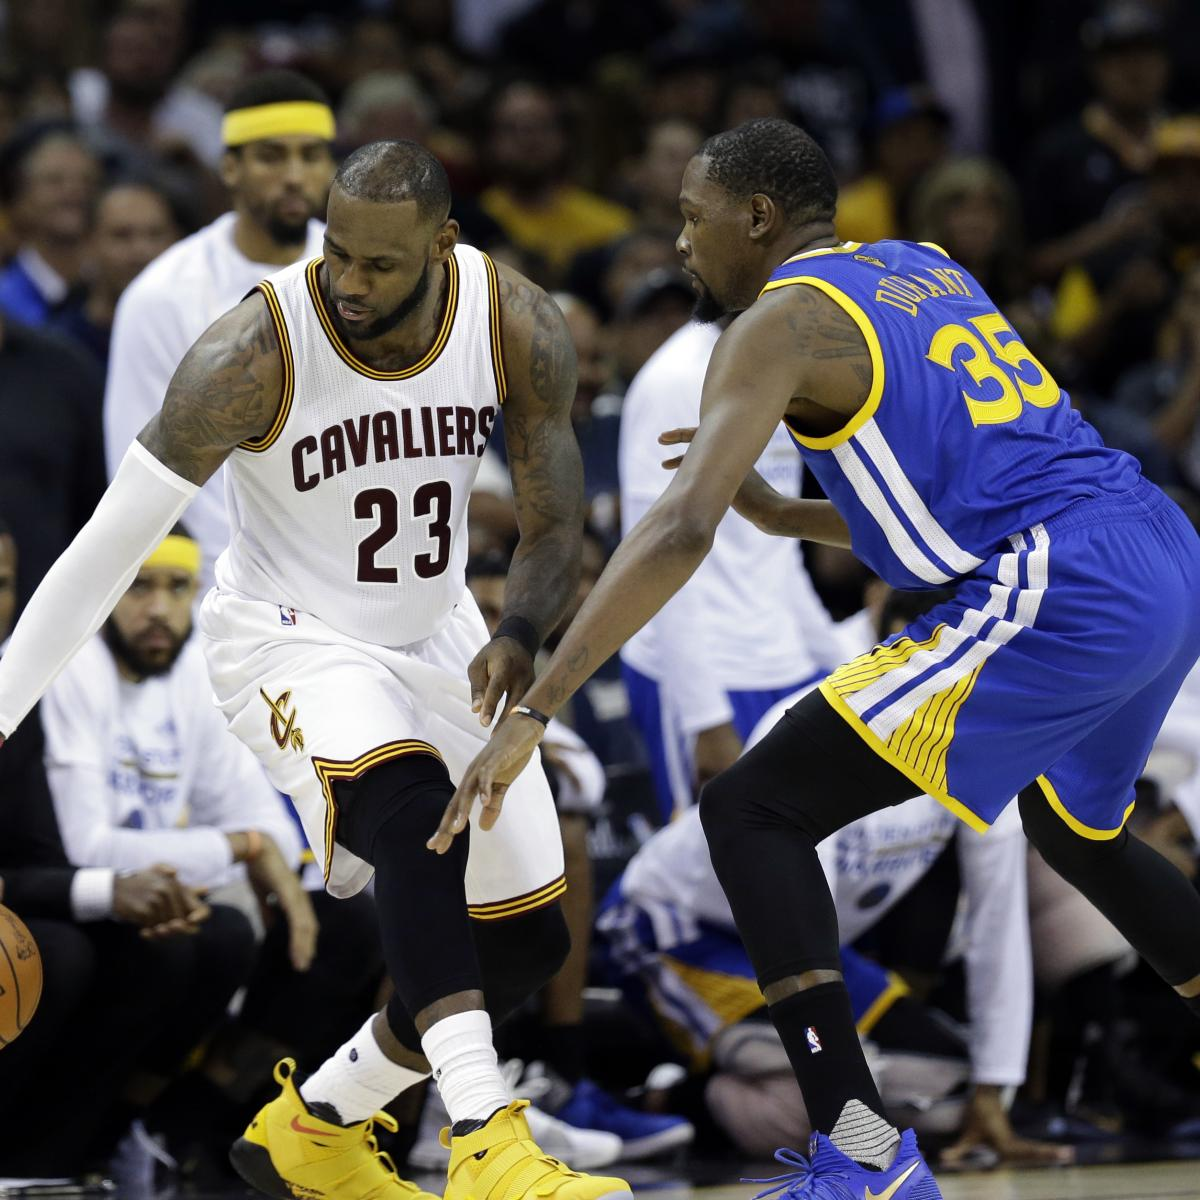 Warriors Come Out To Play Bleacher Report: NBA Finals 2017: Warriors Vs. Cavaliers Game 5 Odds, Props